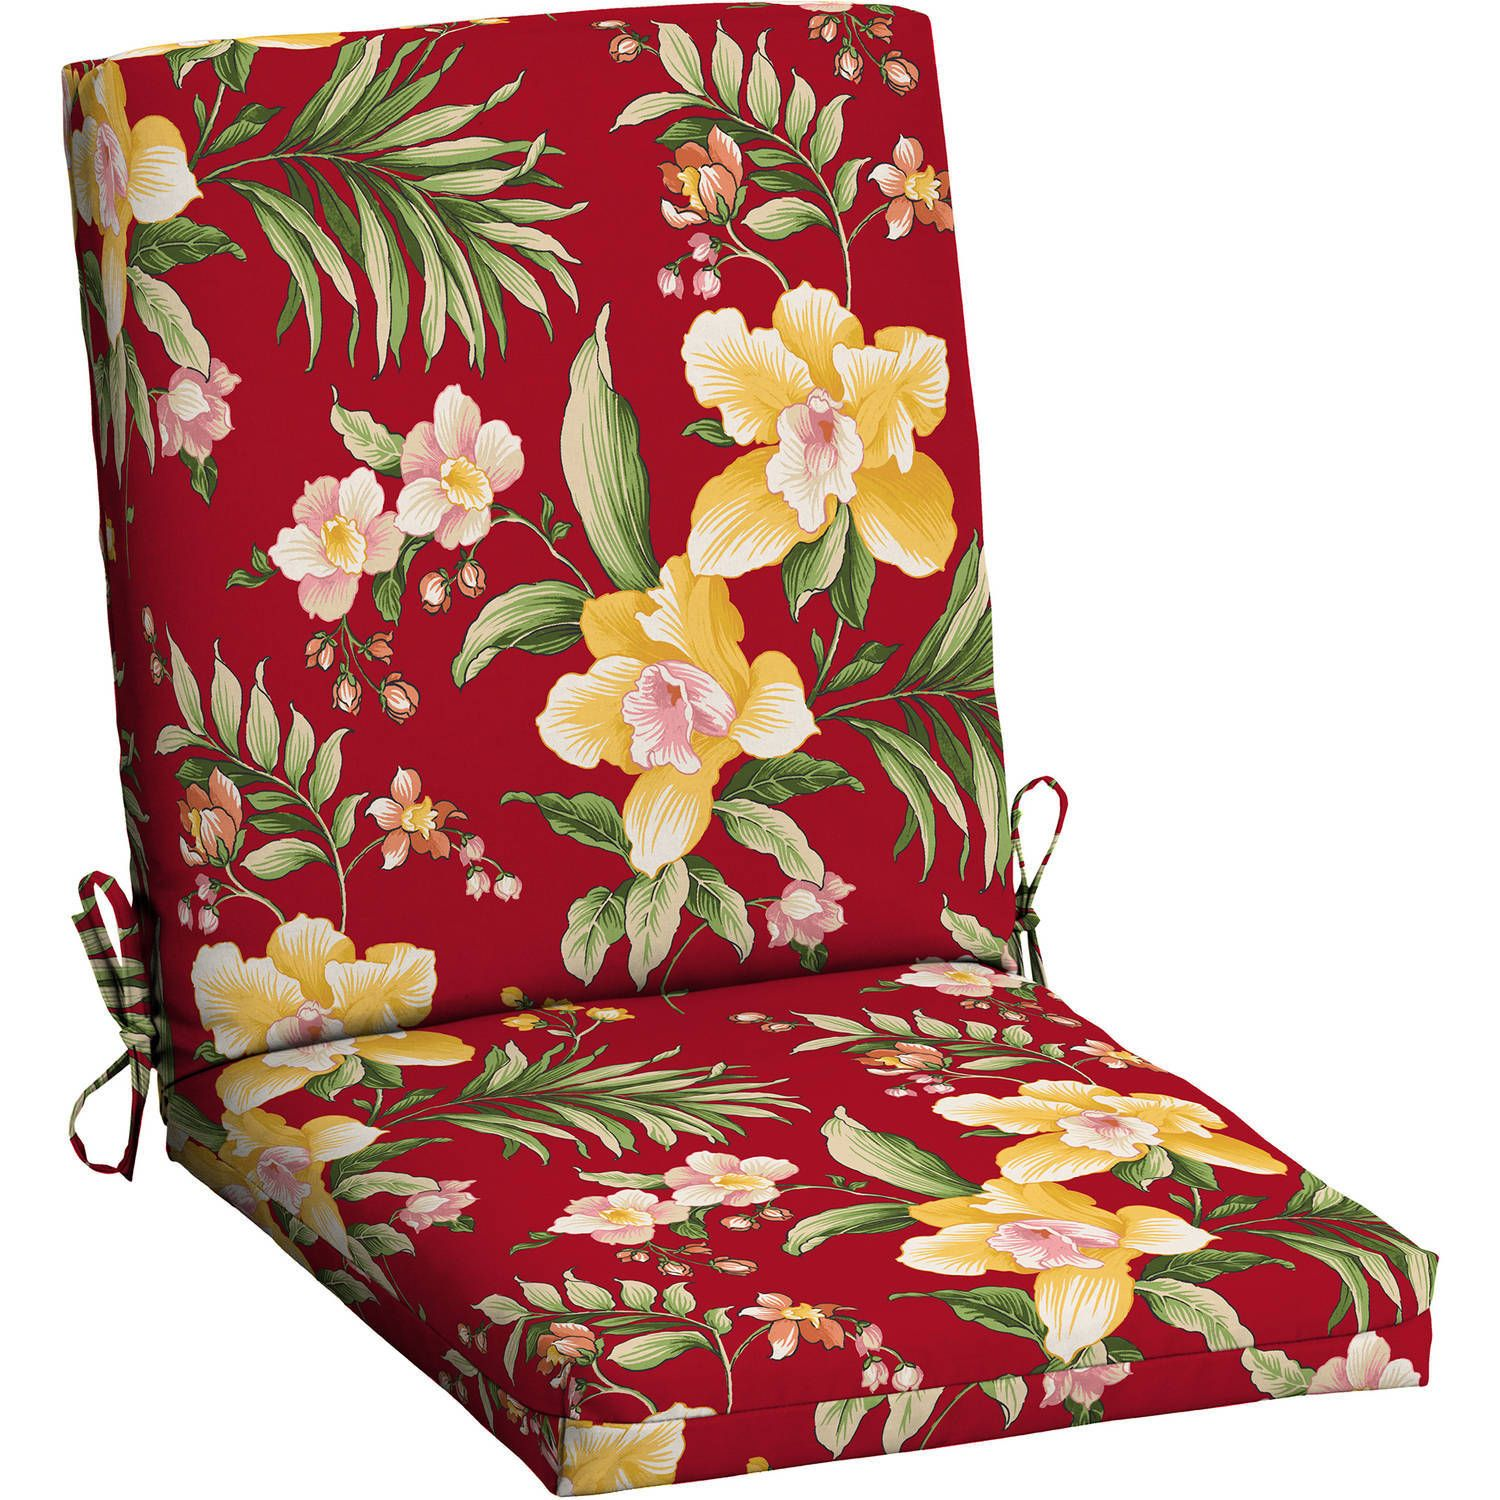 Breathtaking Walmart Patio Chair Cushions With Amazing Pattern